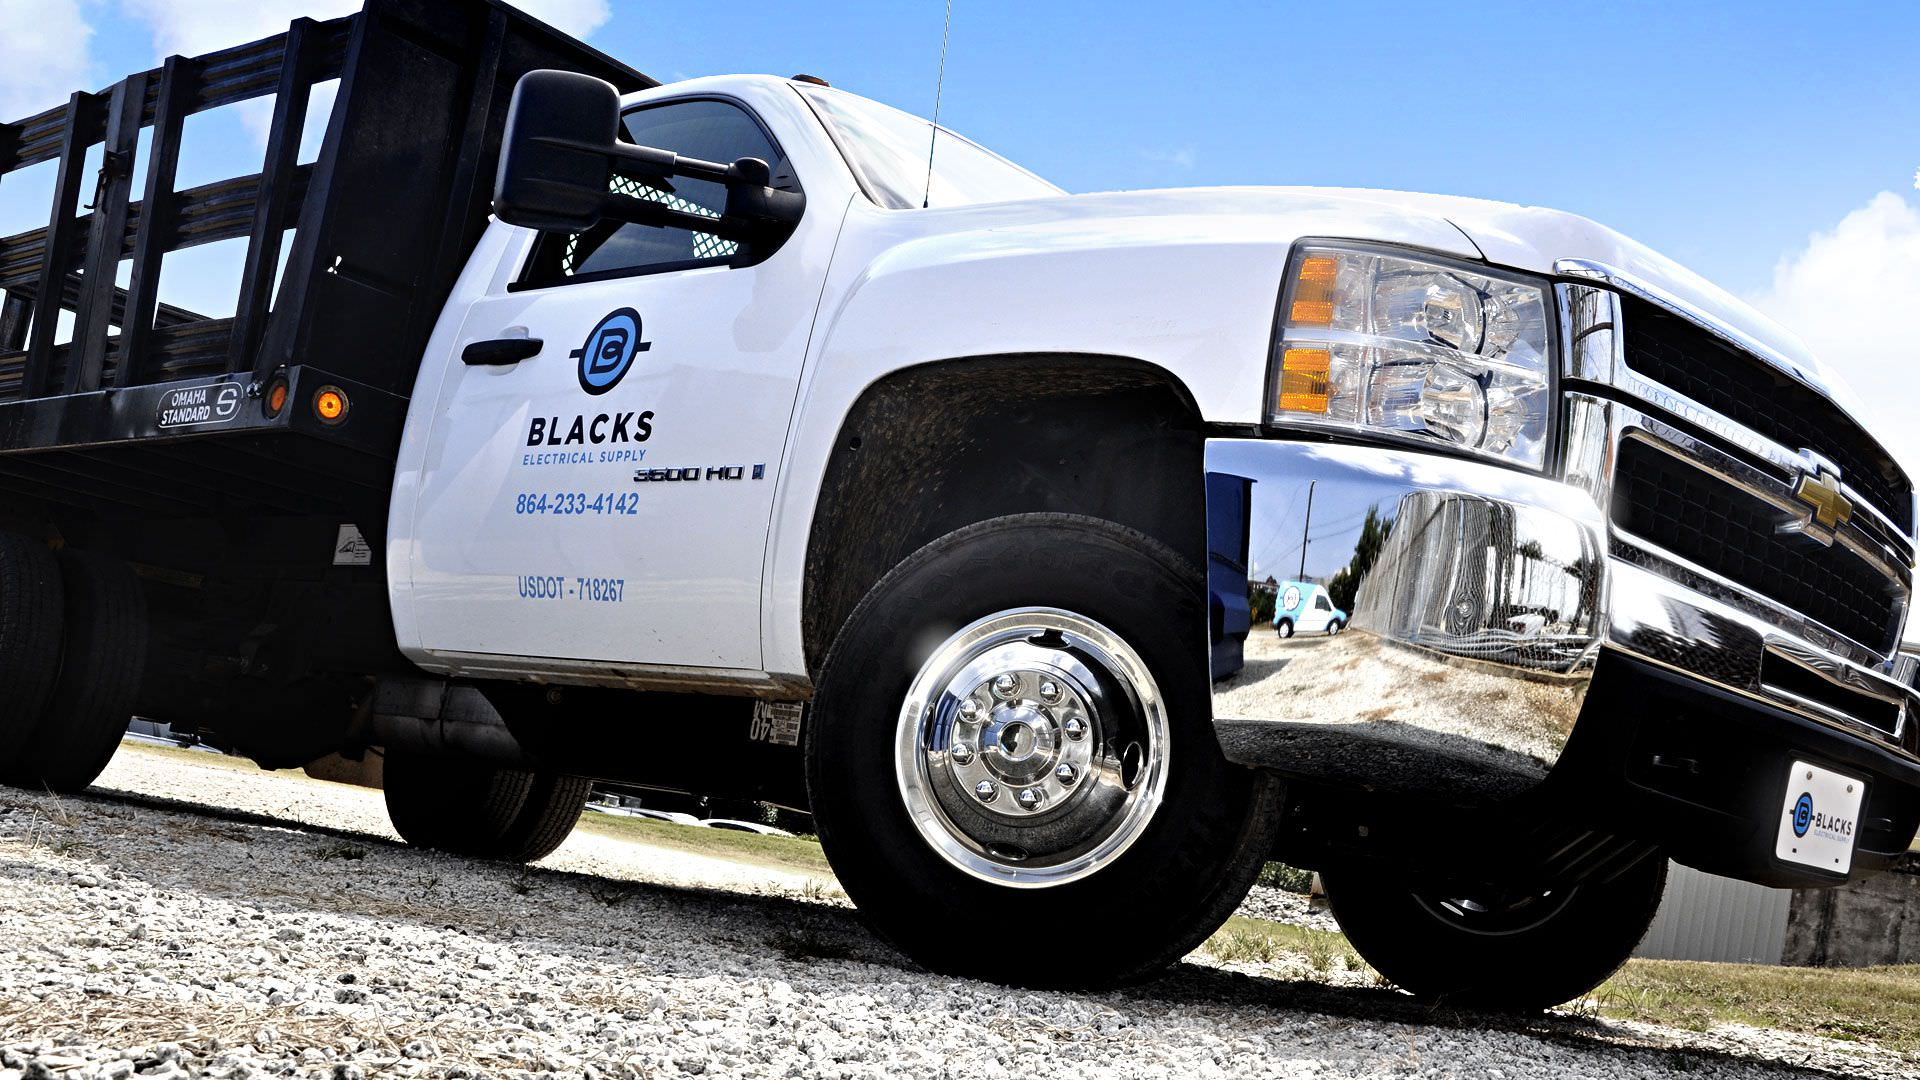 Blacks Electrical Supply - Utility Truck